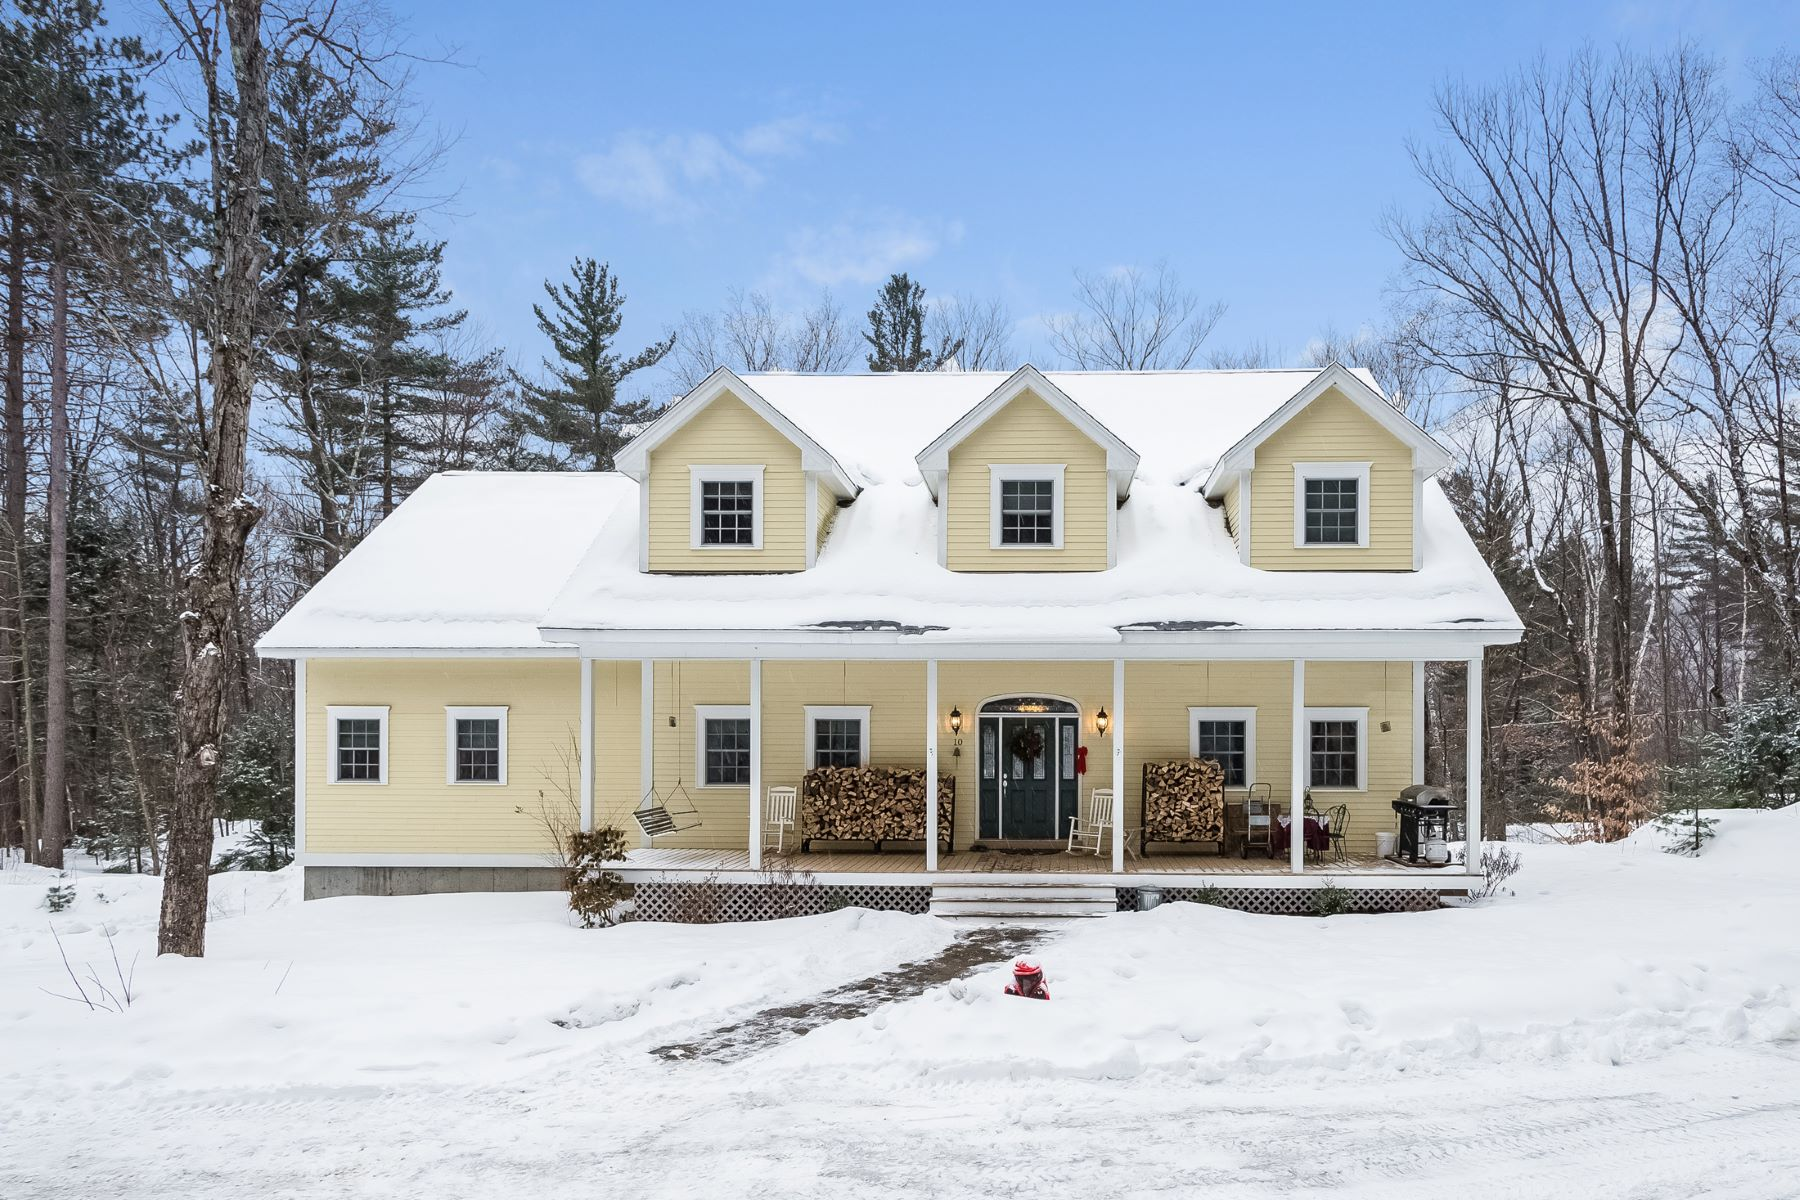 Single Family Home for Sale at Easy Living in the White Mountains 10 Old Fairfield Woodstock, 03293 United States